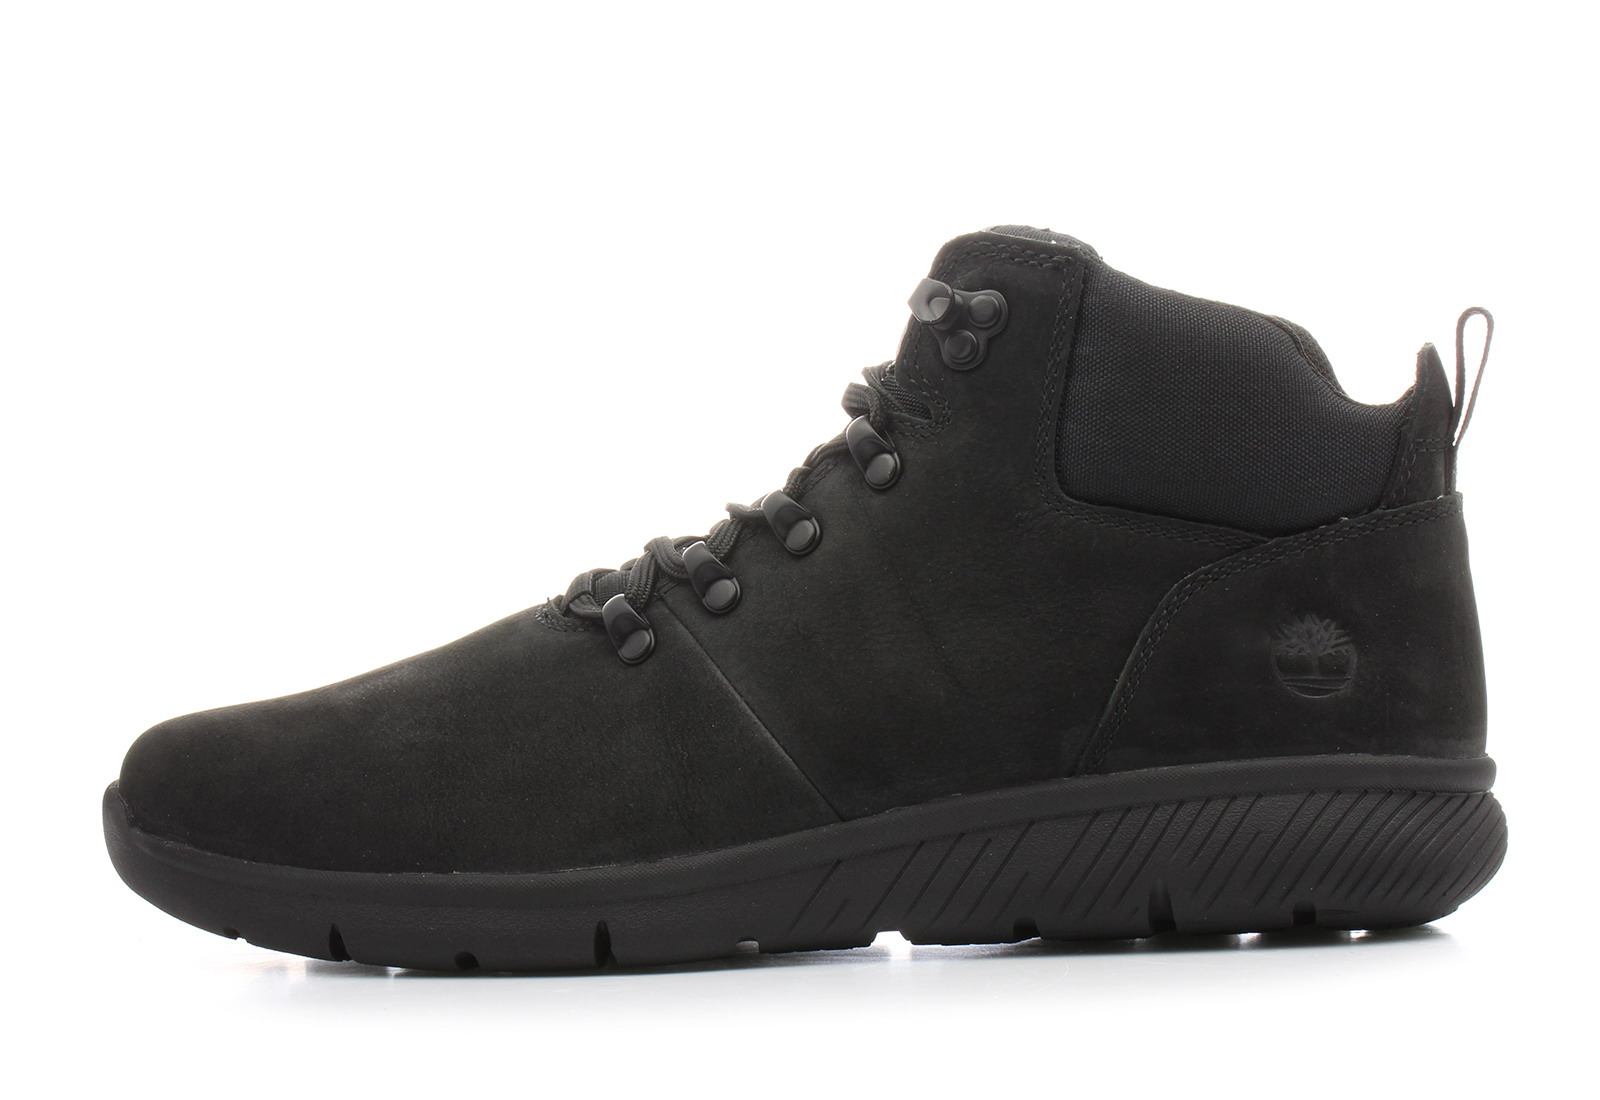 Timberland Boots Boltero Hiker A1R1S blk Online shop for sneakers, shoes and boots